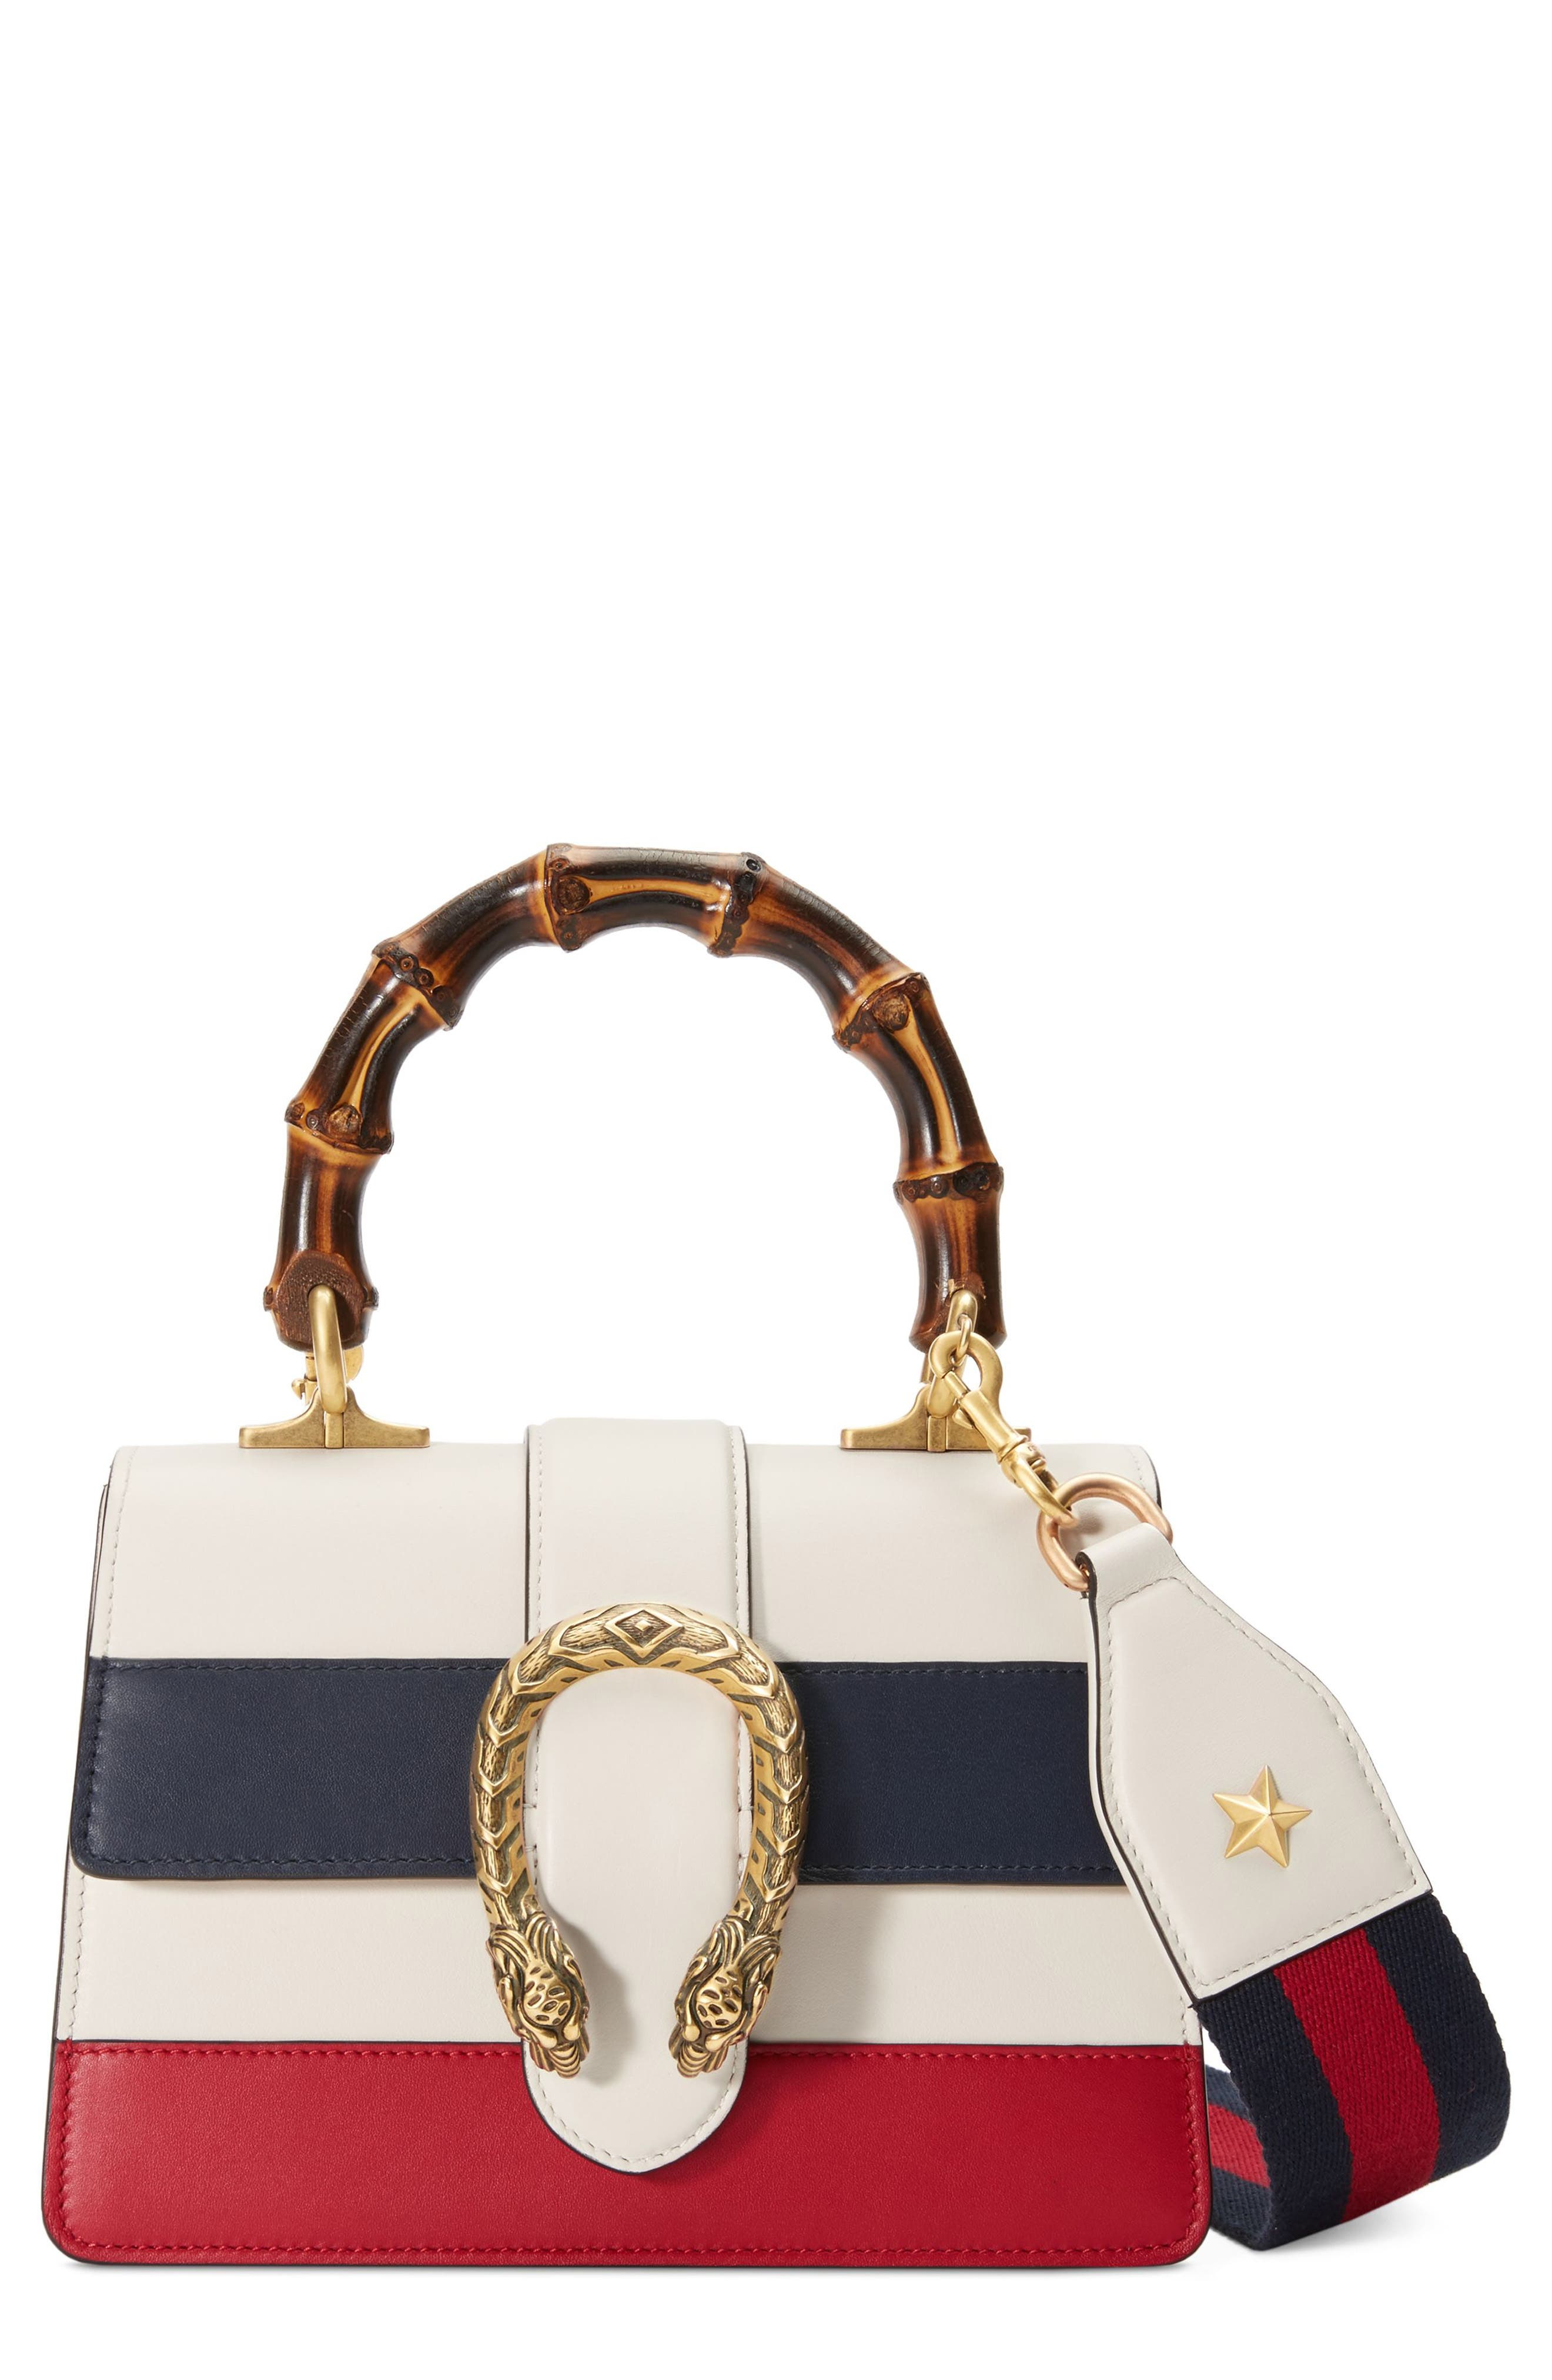 Mini Dionysus Leather Top Handle Satchel,                             Main thumbnail 1, color,                             WHITE/ BLUE/ HIBISCUS RED